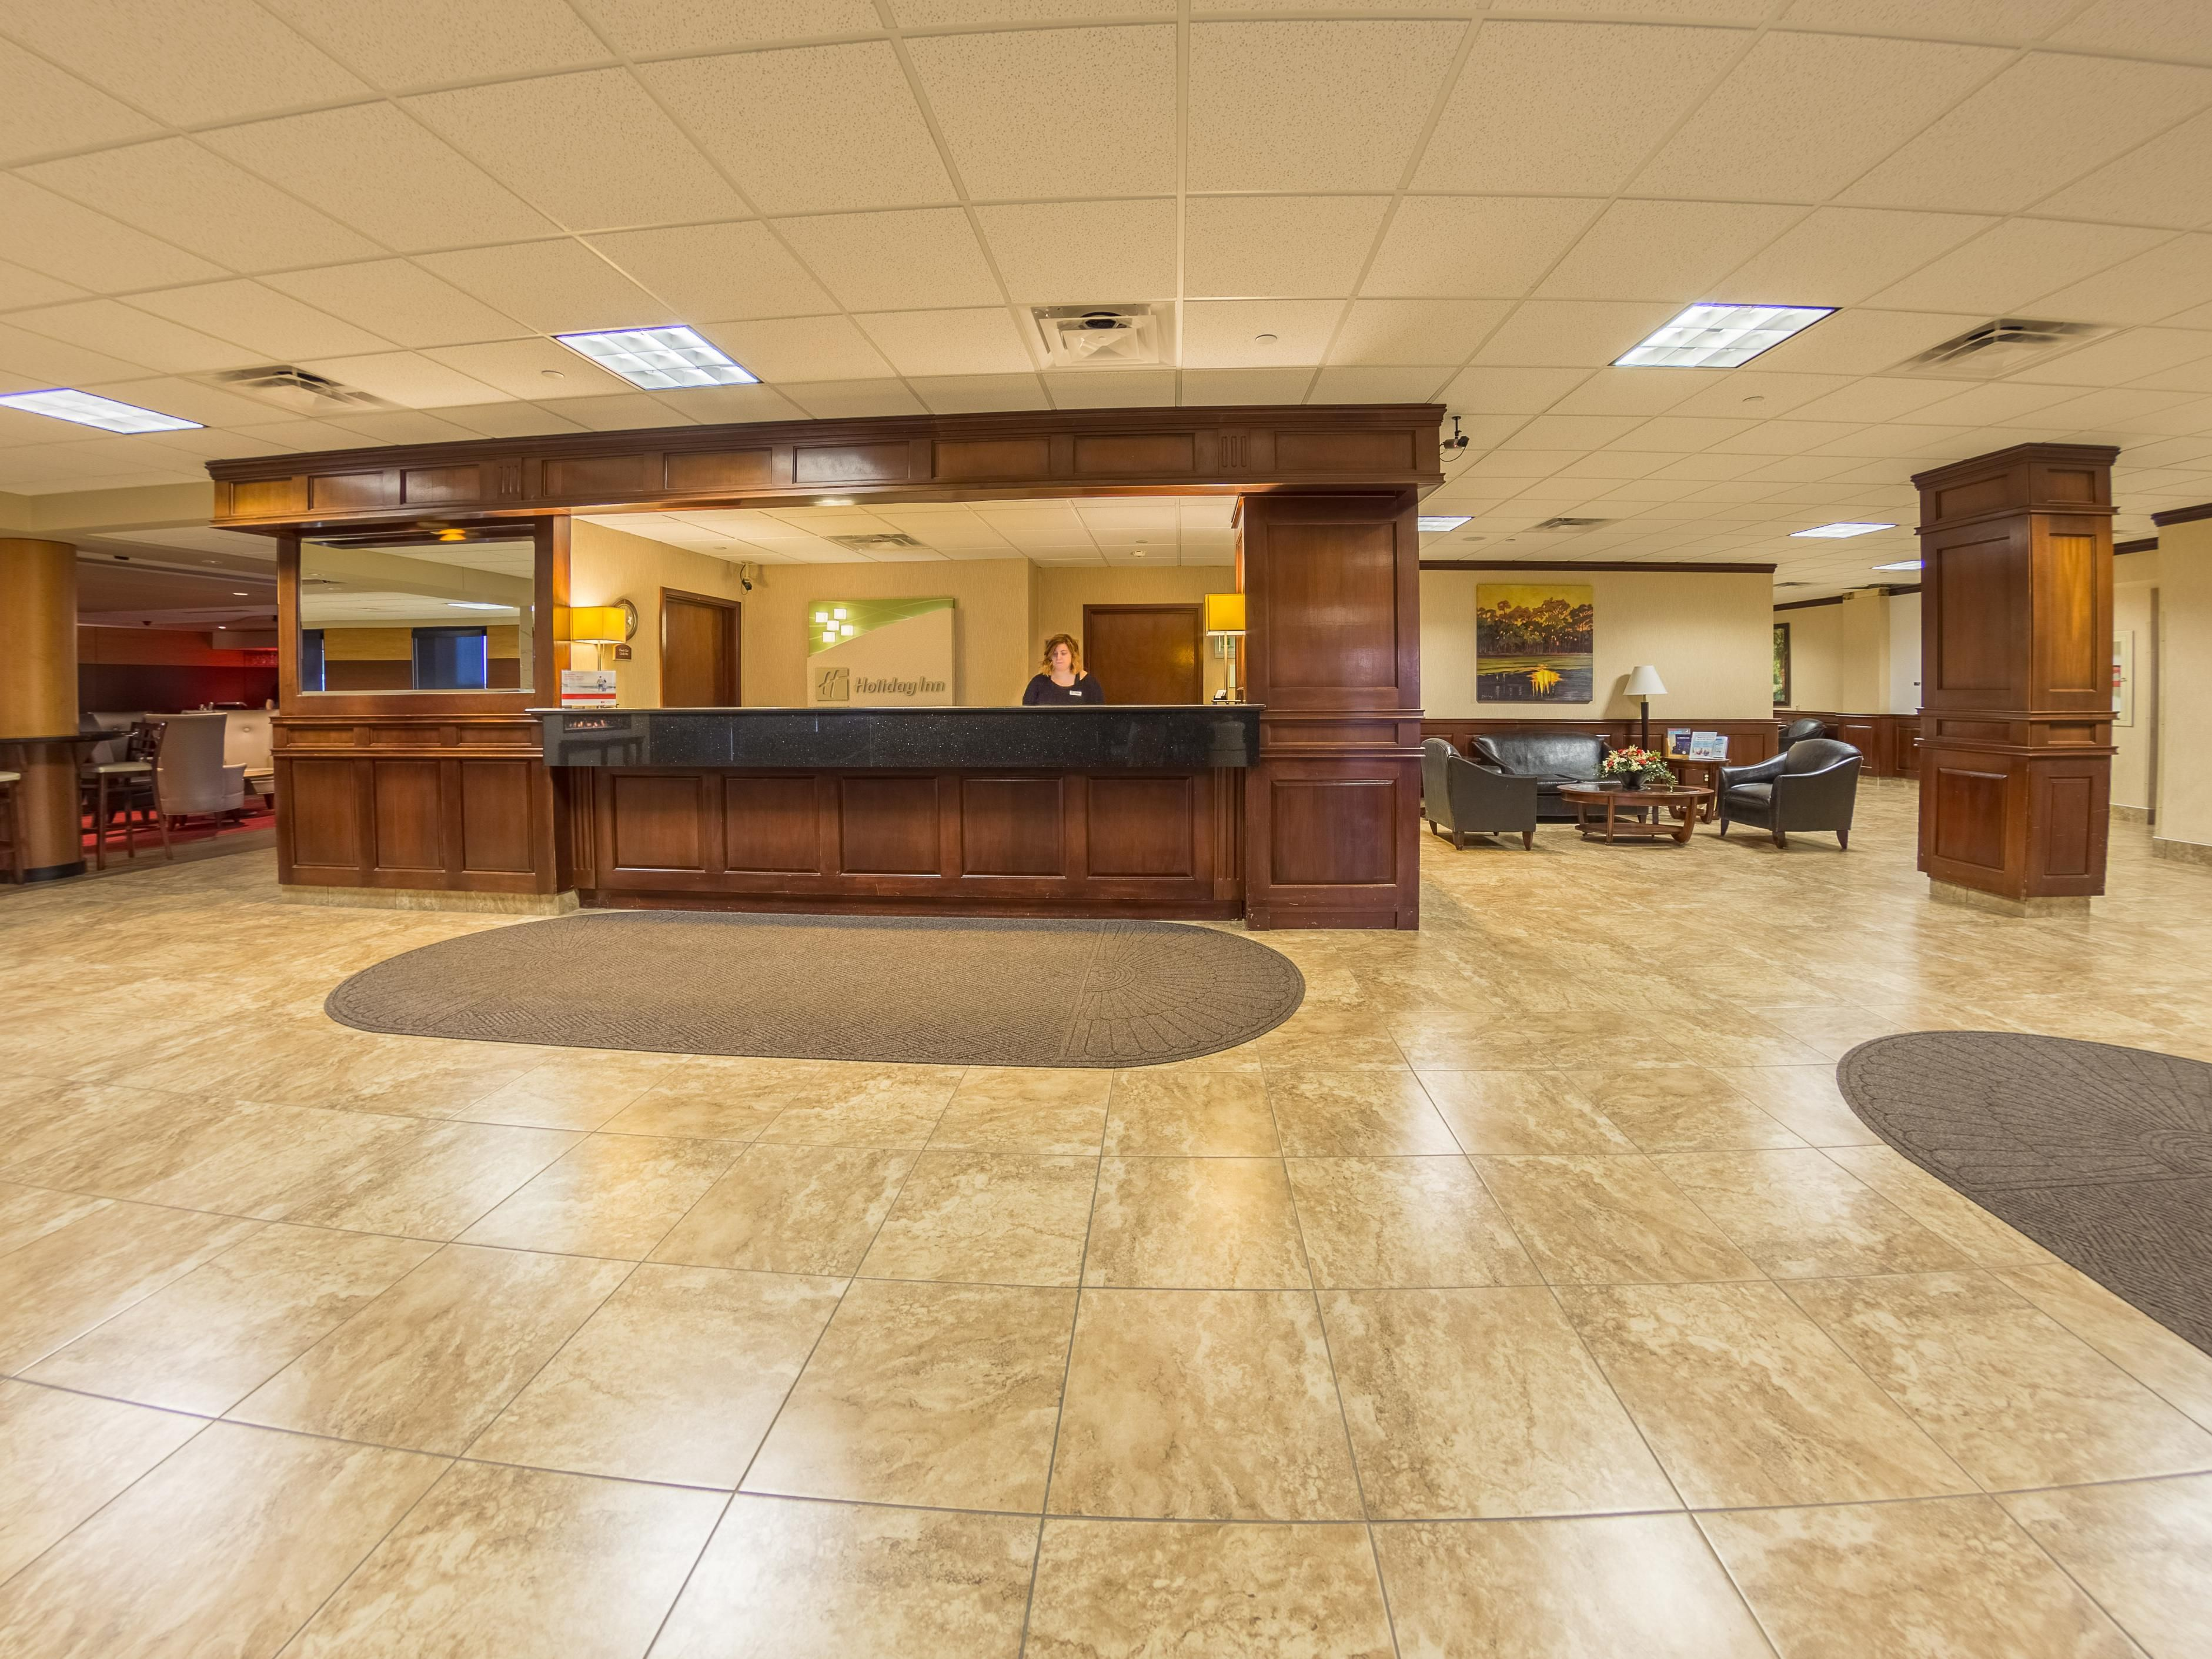 Des Moines Airport Hotel Lobby